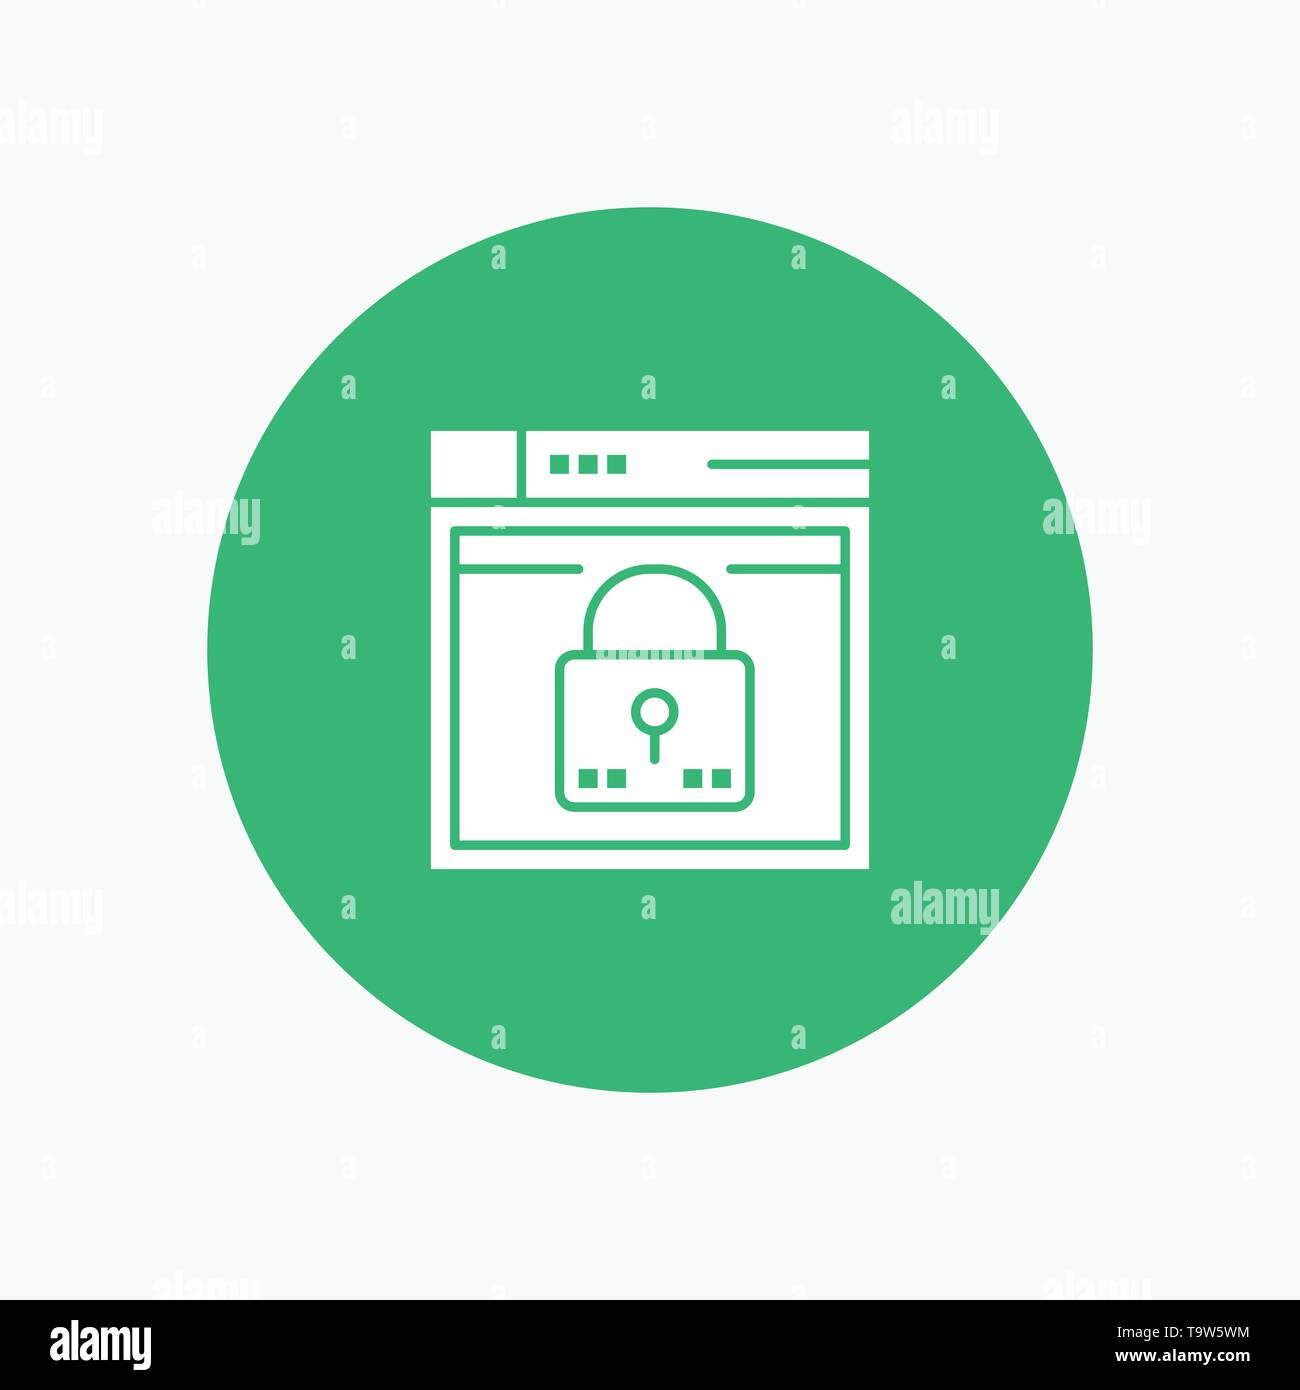 Login, Secure, Web, Layout, Password, Lock - Stock Image